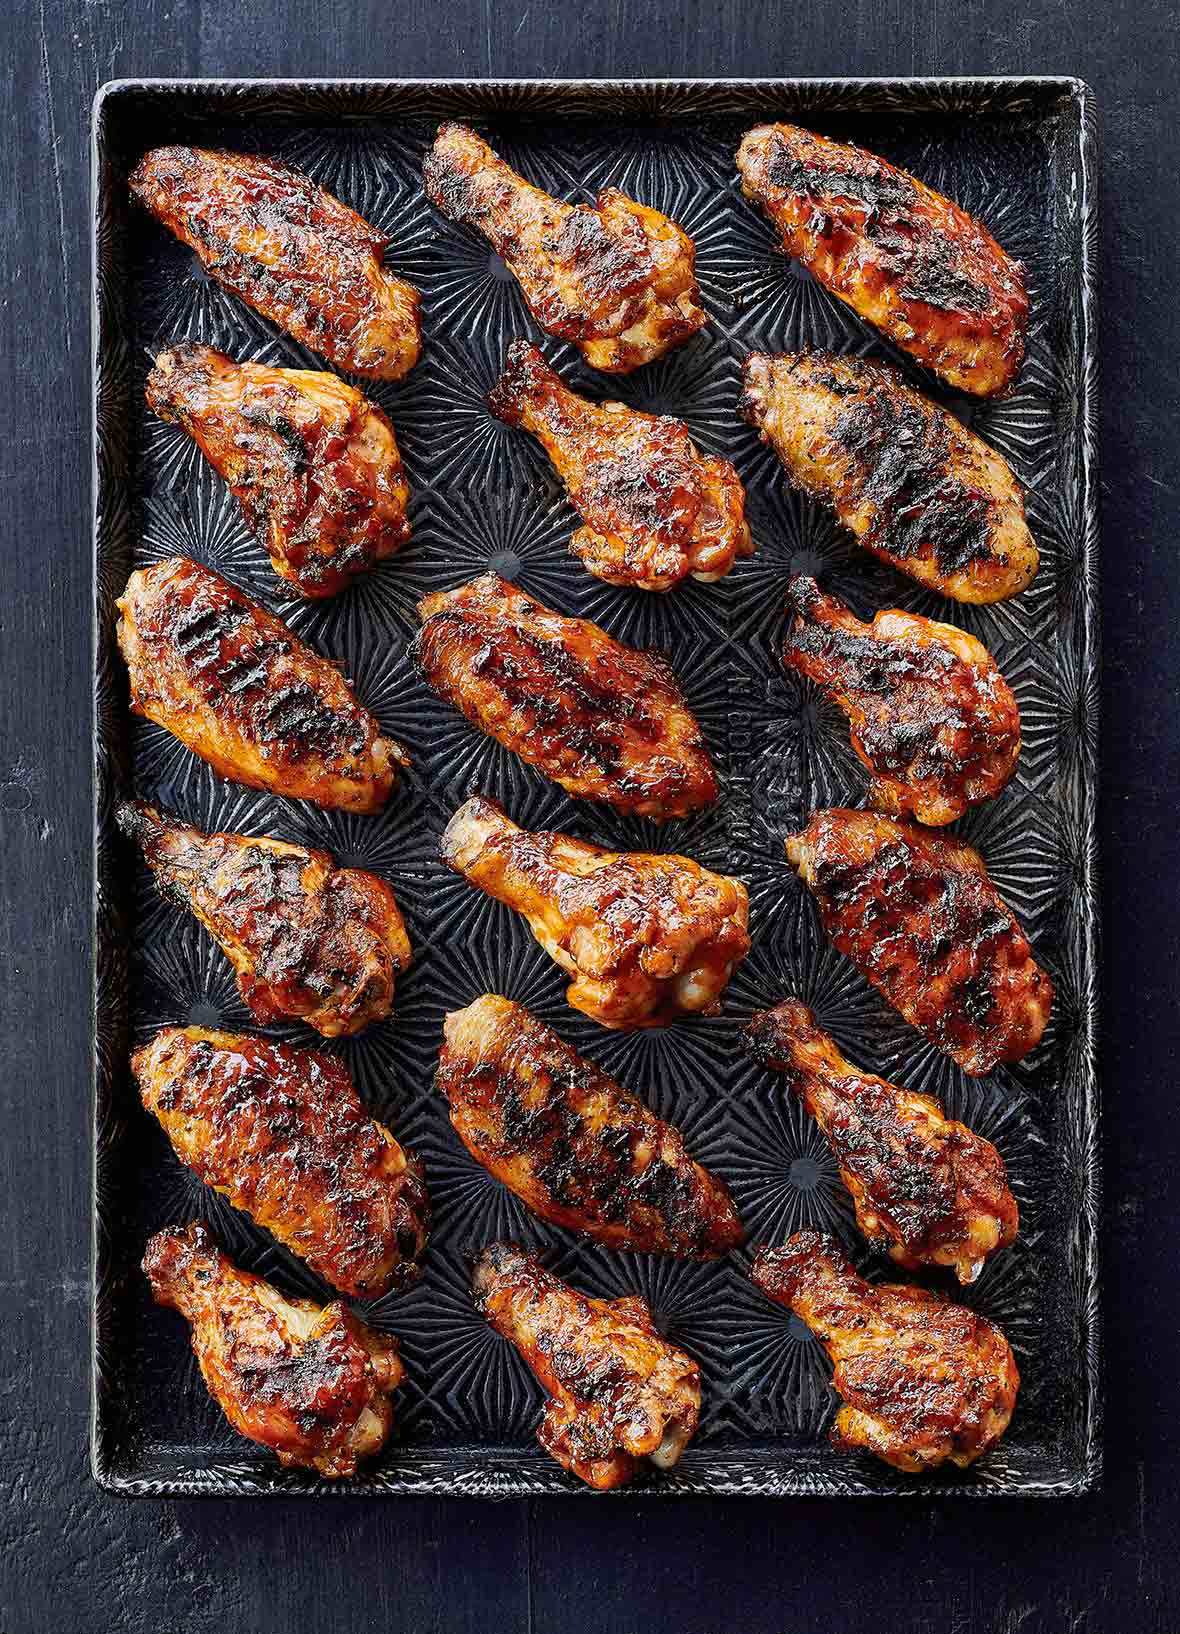 A rimmed baking sheet with 18 grilled chicken wings with maple bourbon sauce.